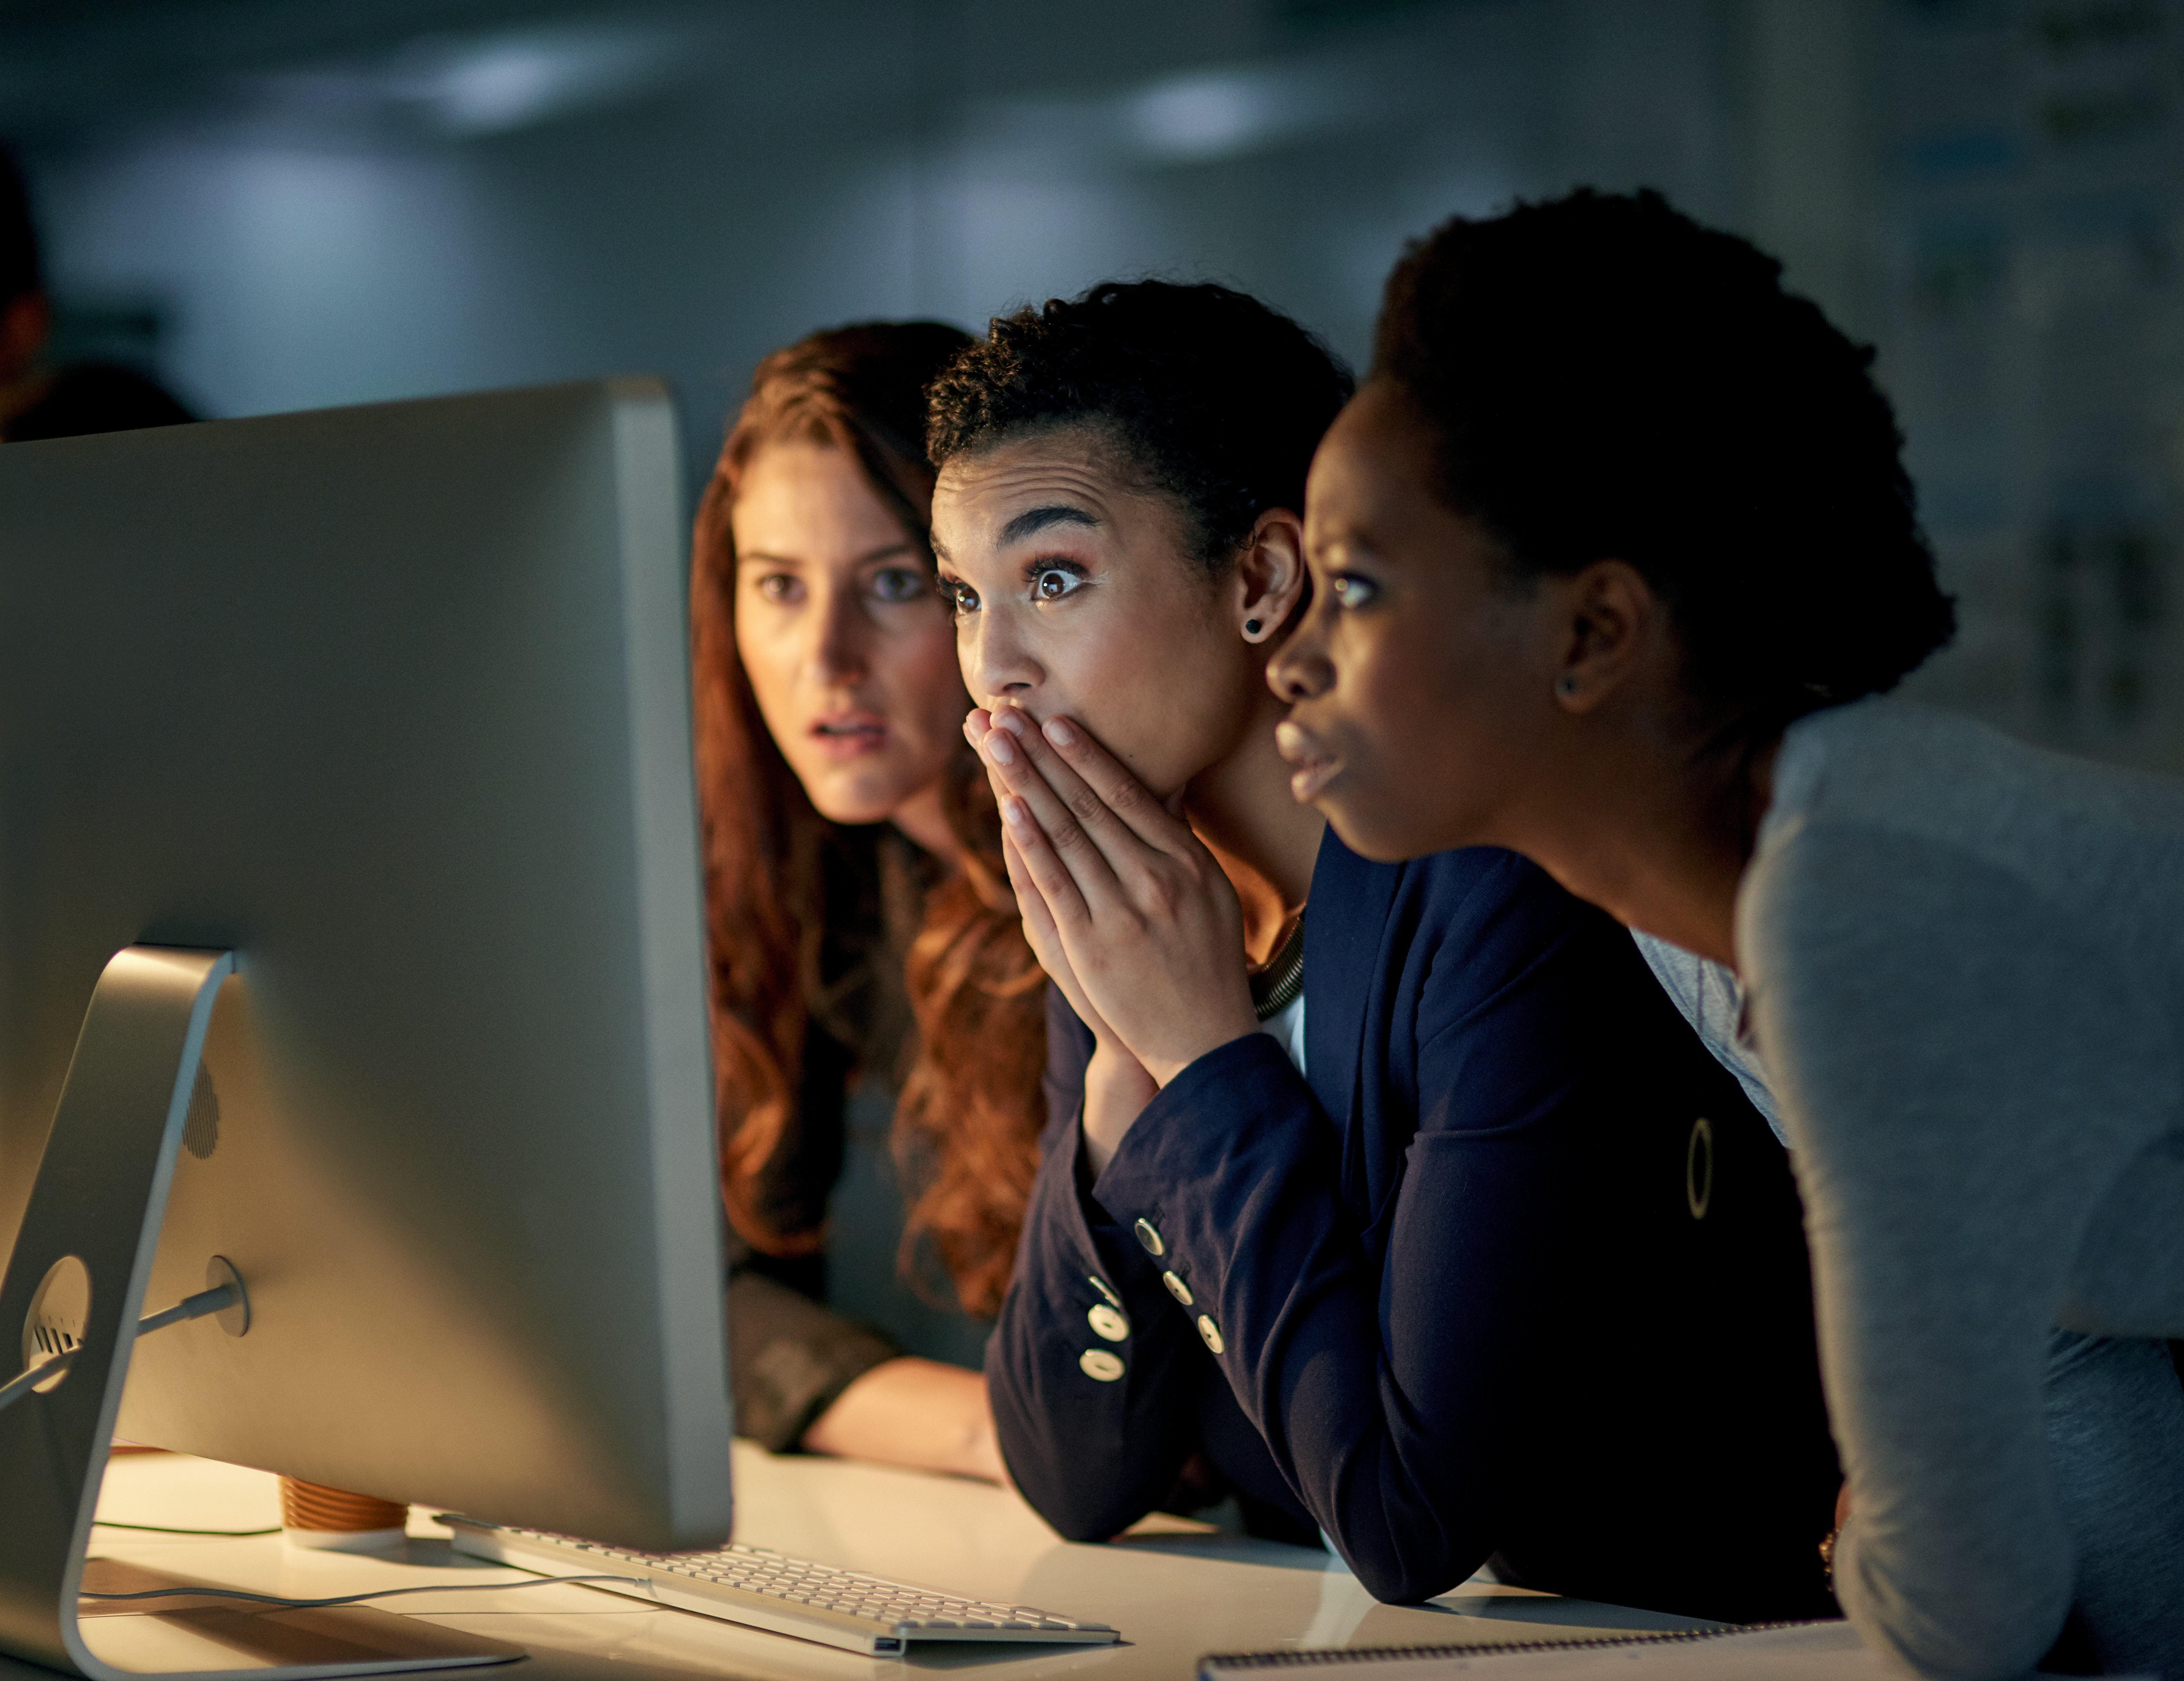 Three women stare at a desktop computer screen in a dark room and look shocked